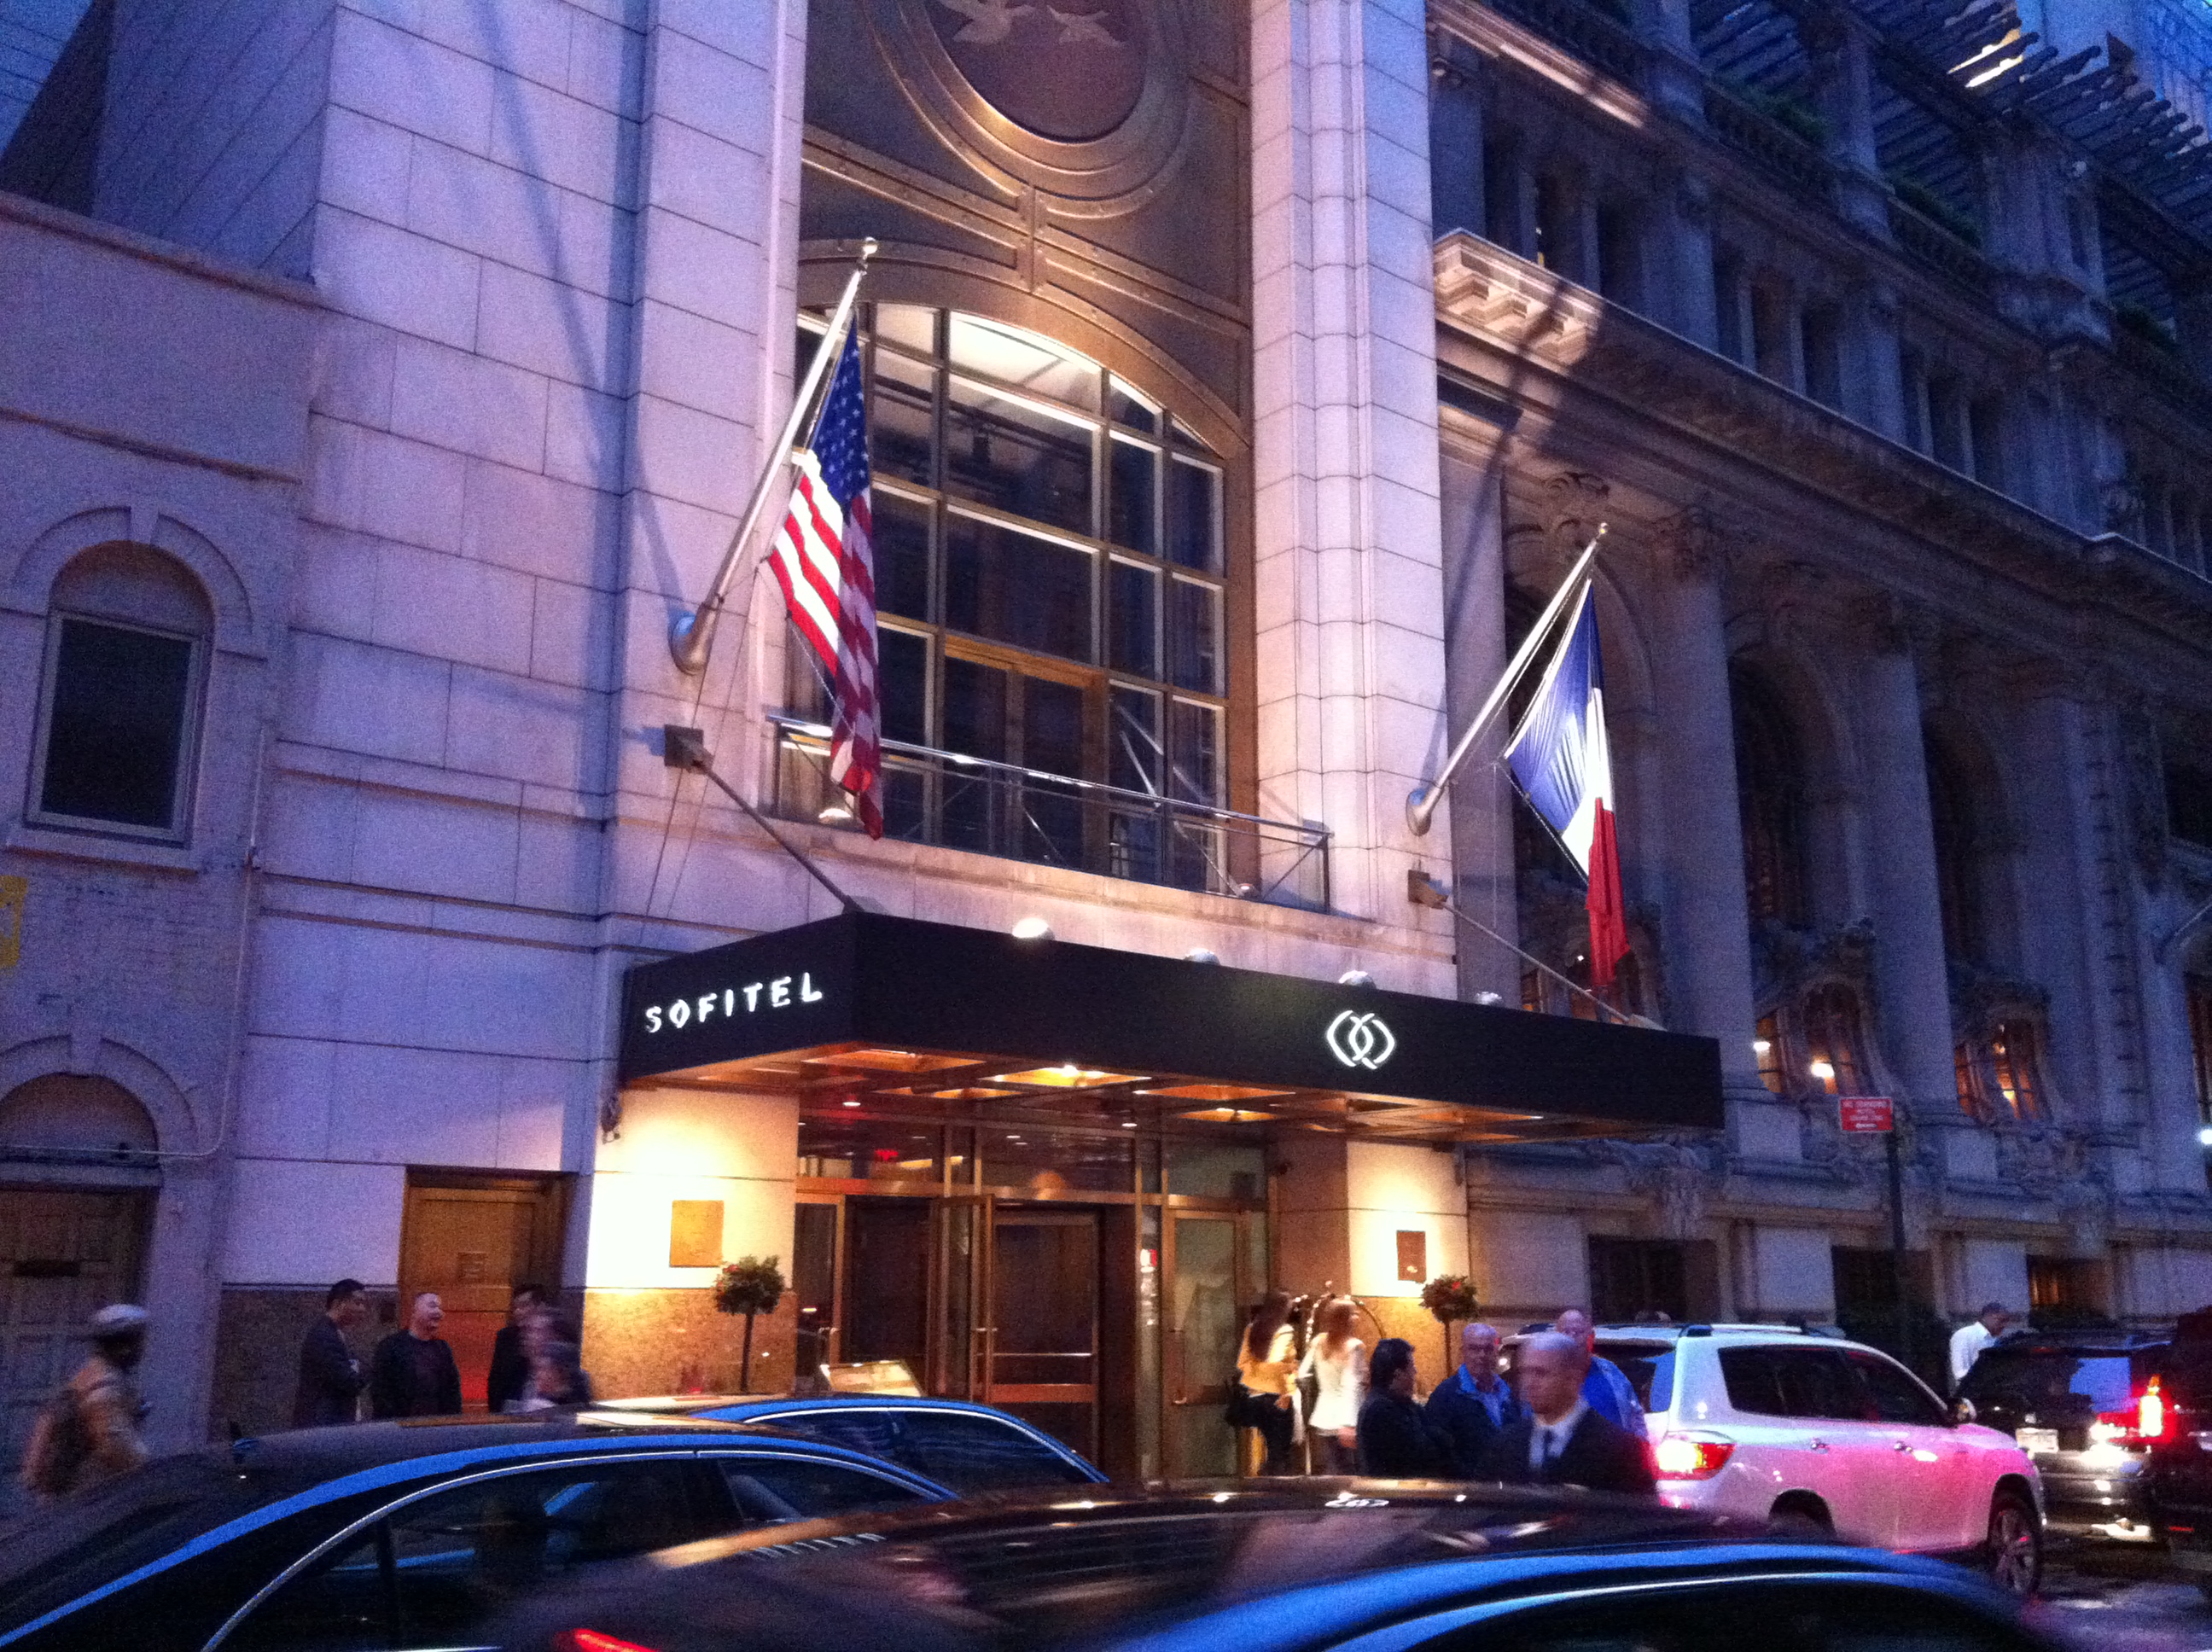 http://erictaillefer.files.wordpress.com/2011/05/sofitel-nyc.jpg